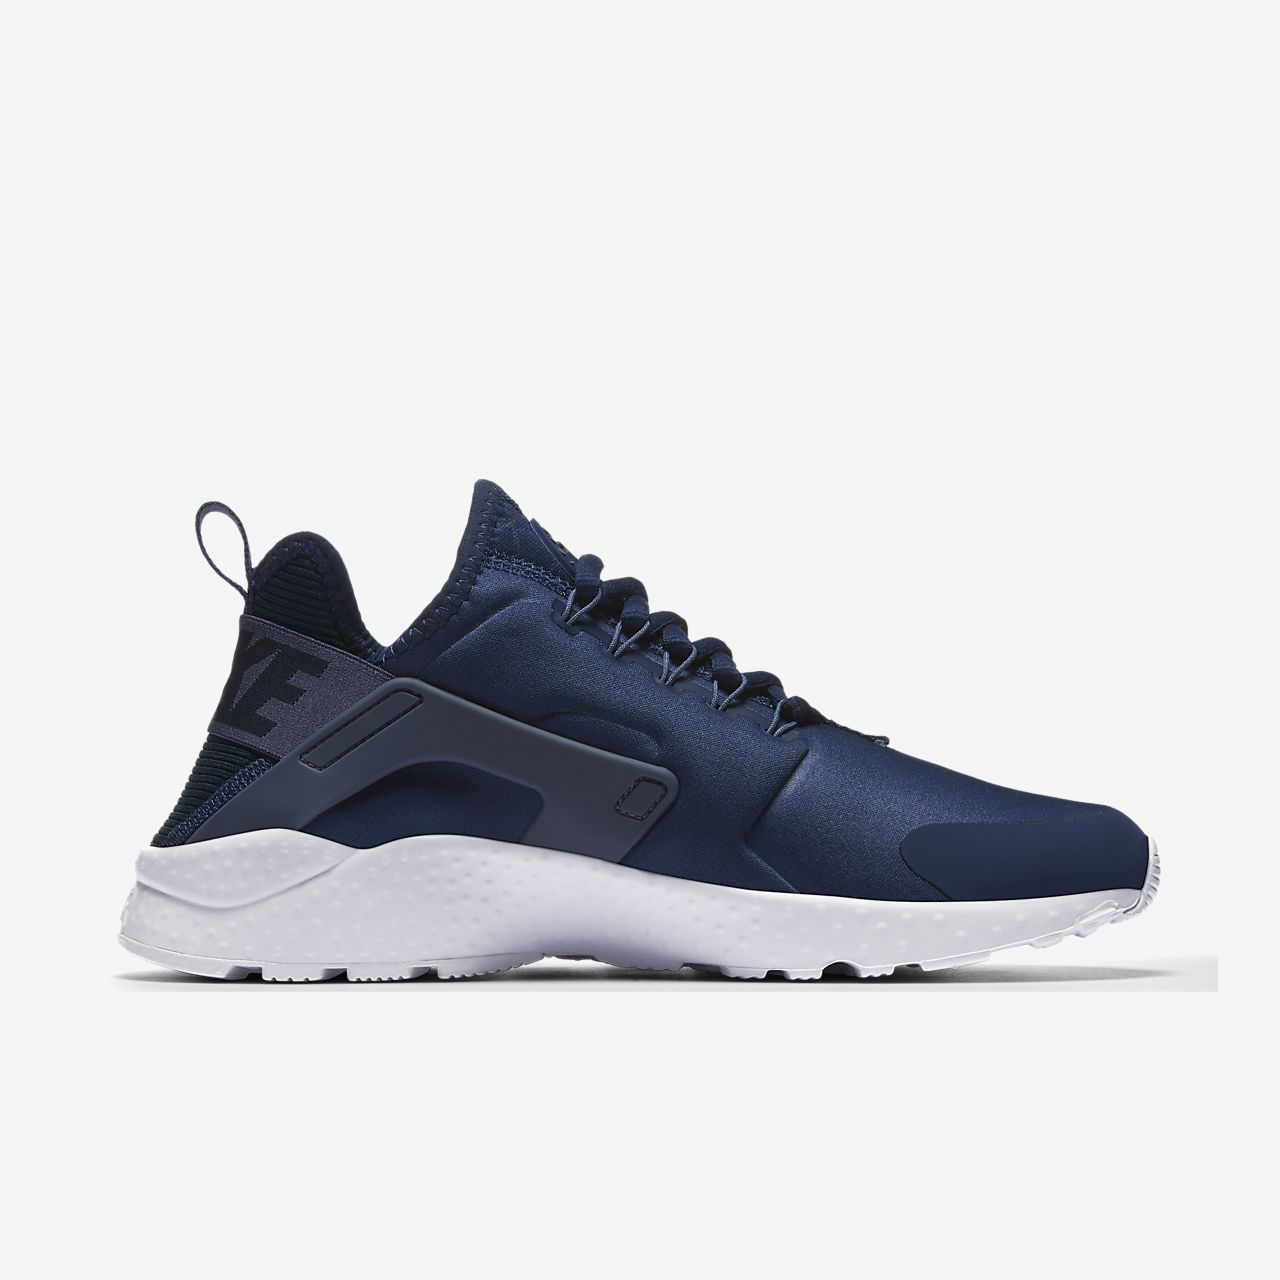 Nike Air Huarache Run Ultra 819151-001 Women